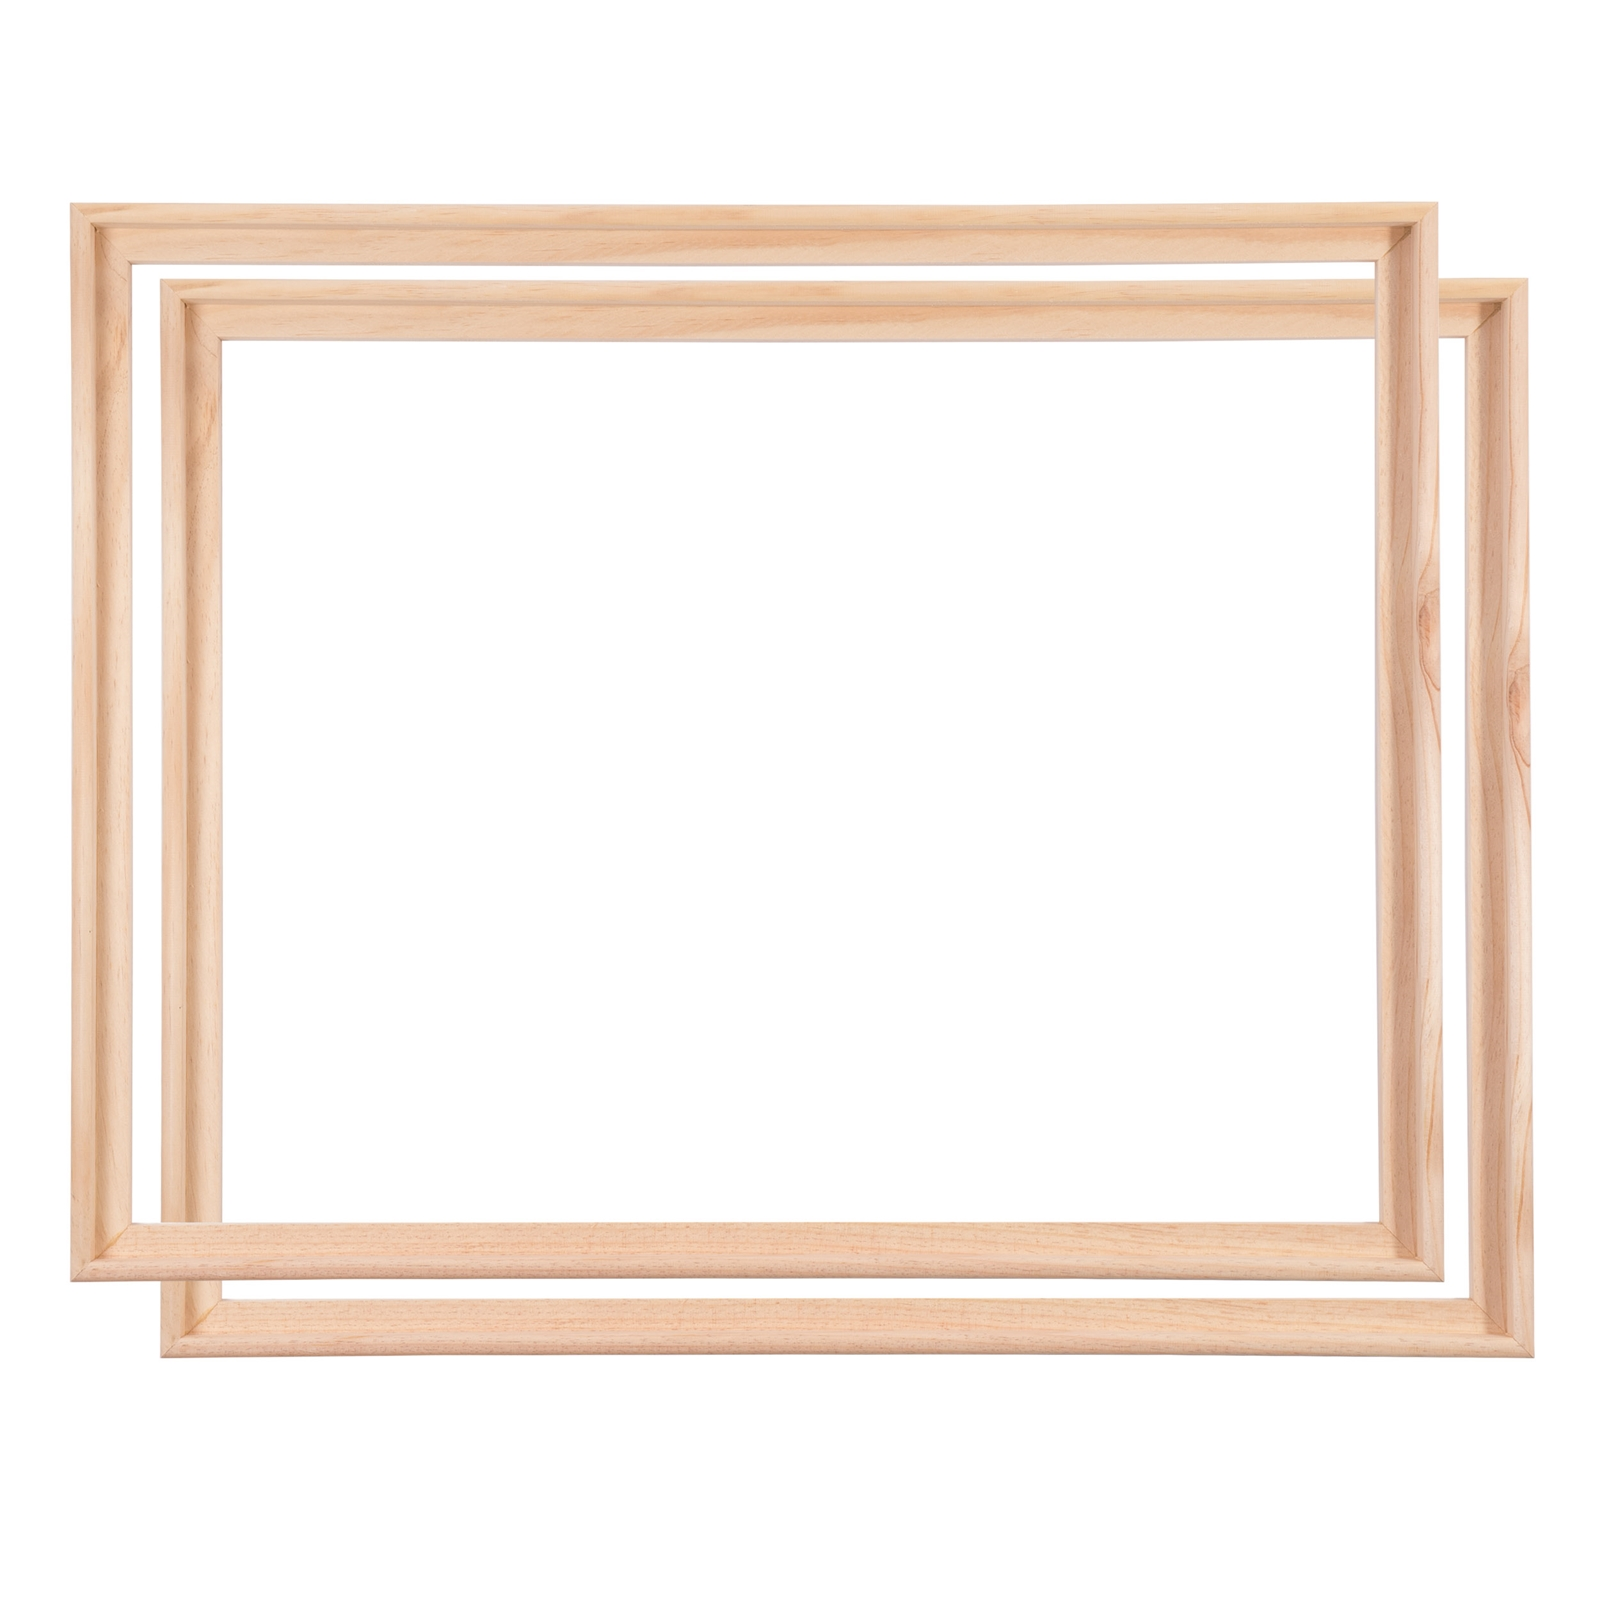 2 wooden canvas floater frames 70x100cm shadow box for stretched canves 4250371508957 ebay. Black Bedroom Furniture Sets. Home Design Ideas